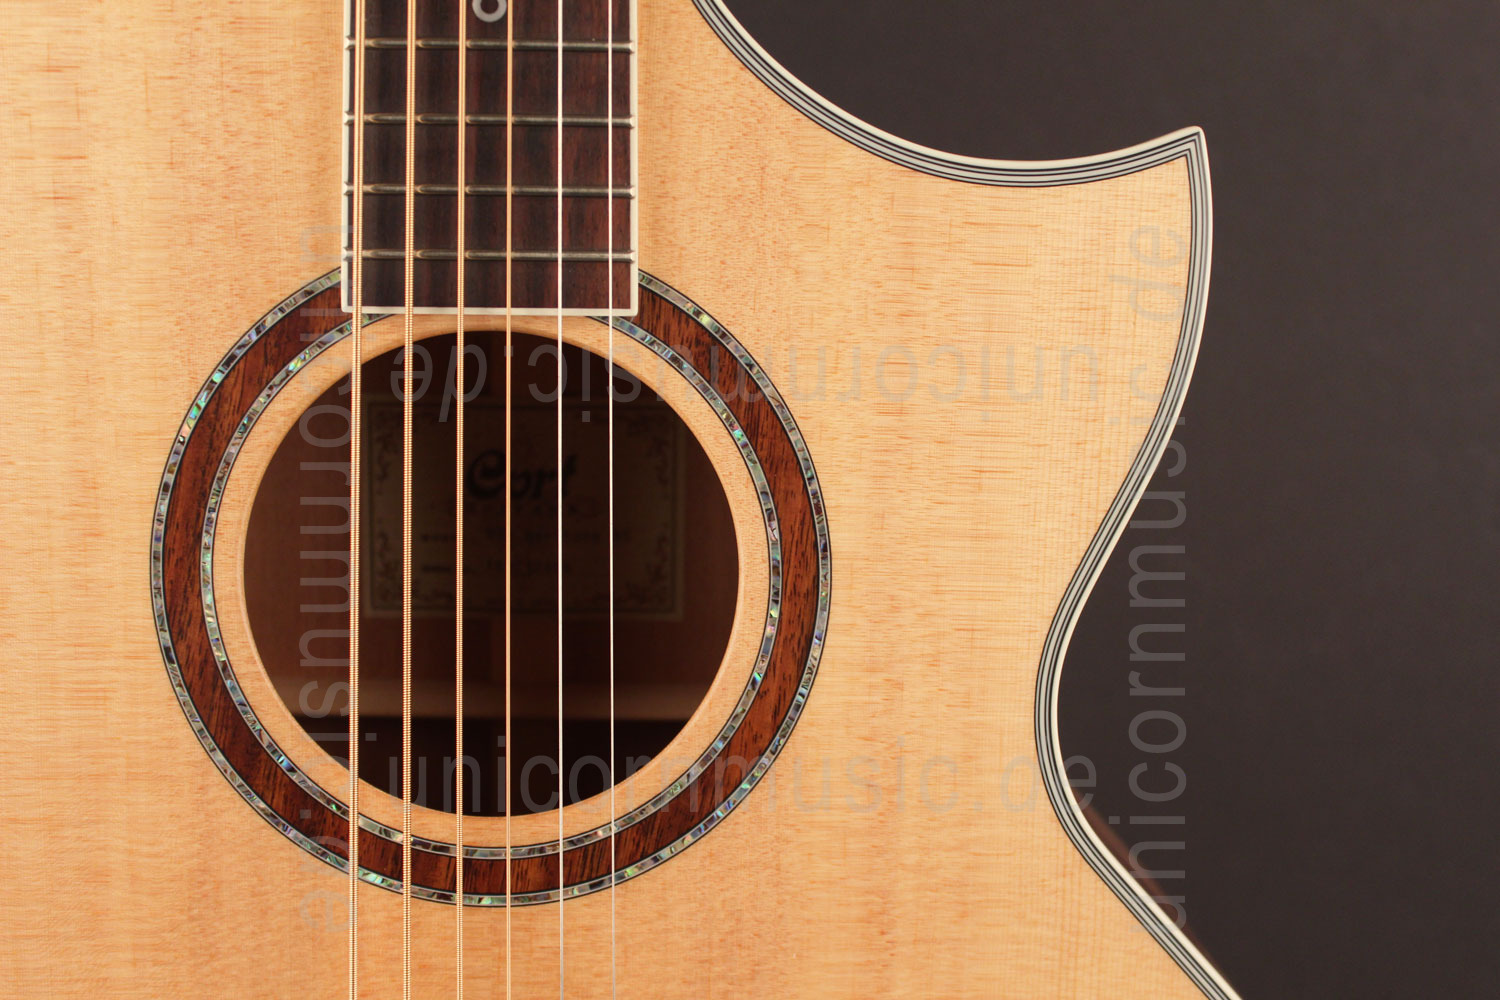 to article description / price Acoustic Guitar CORT NDX Baritone - Fishman Pickup - solid spruce top